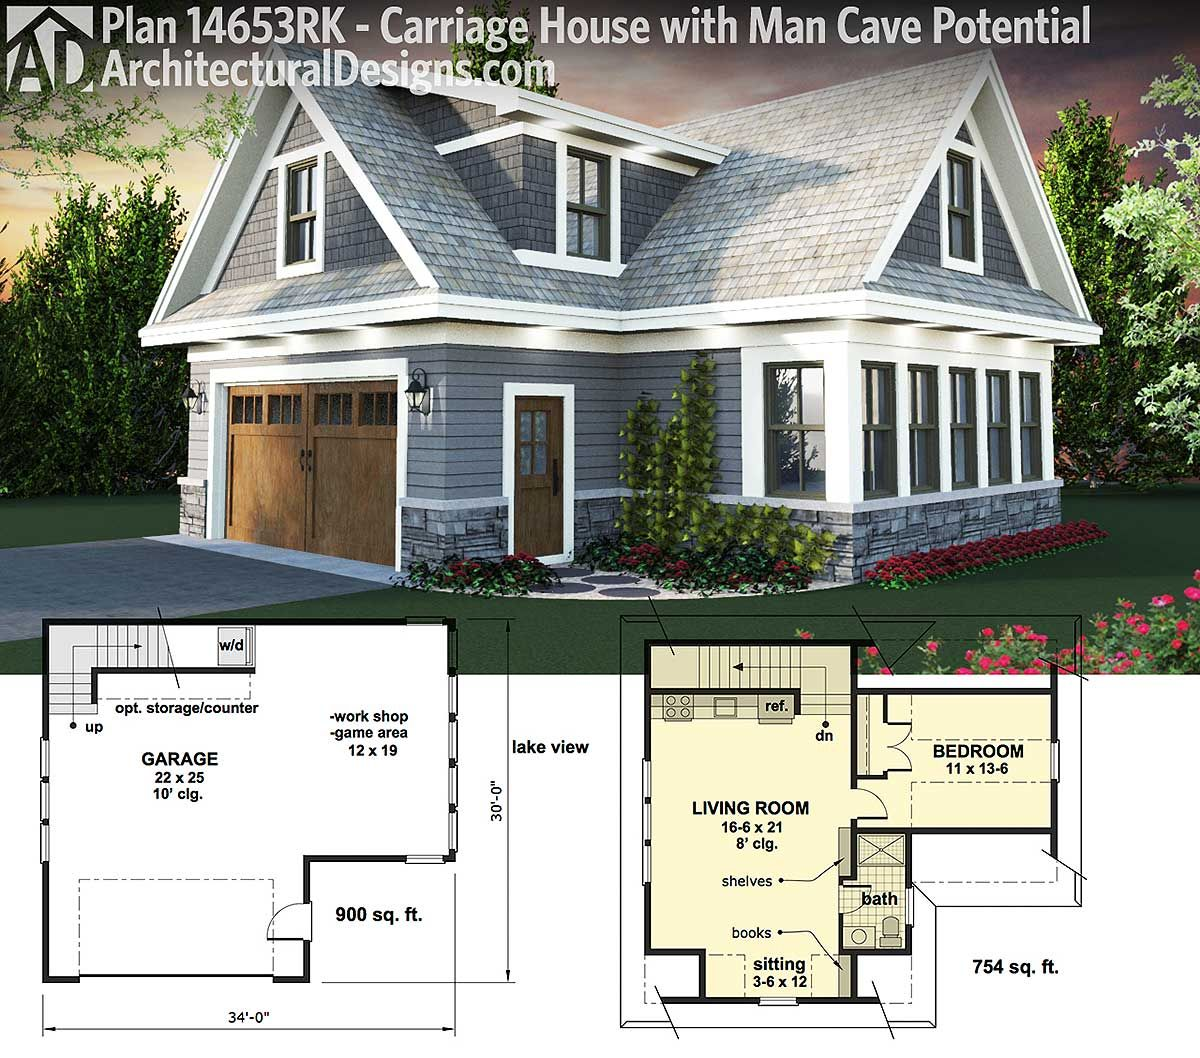 plan 14653rk carriage house plan with man cave potential architectural designs carriage house plan 14653rk use it for your cars for a guest